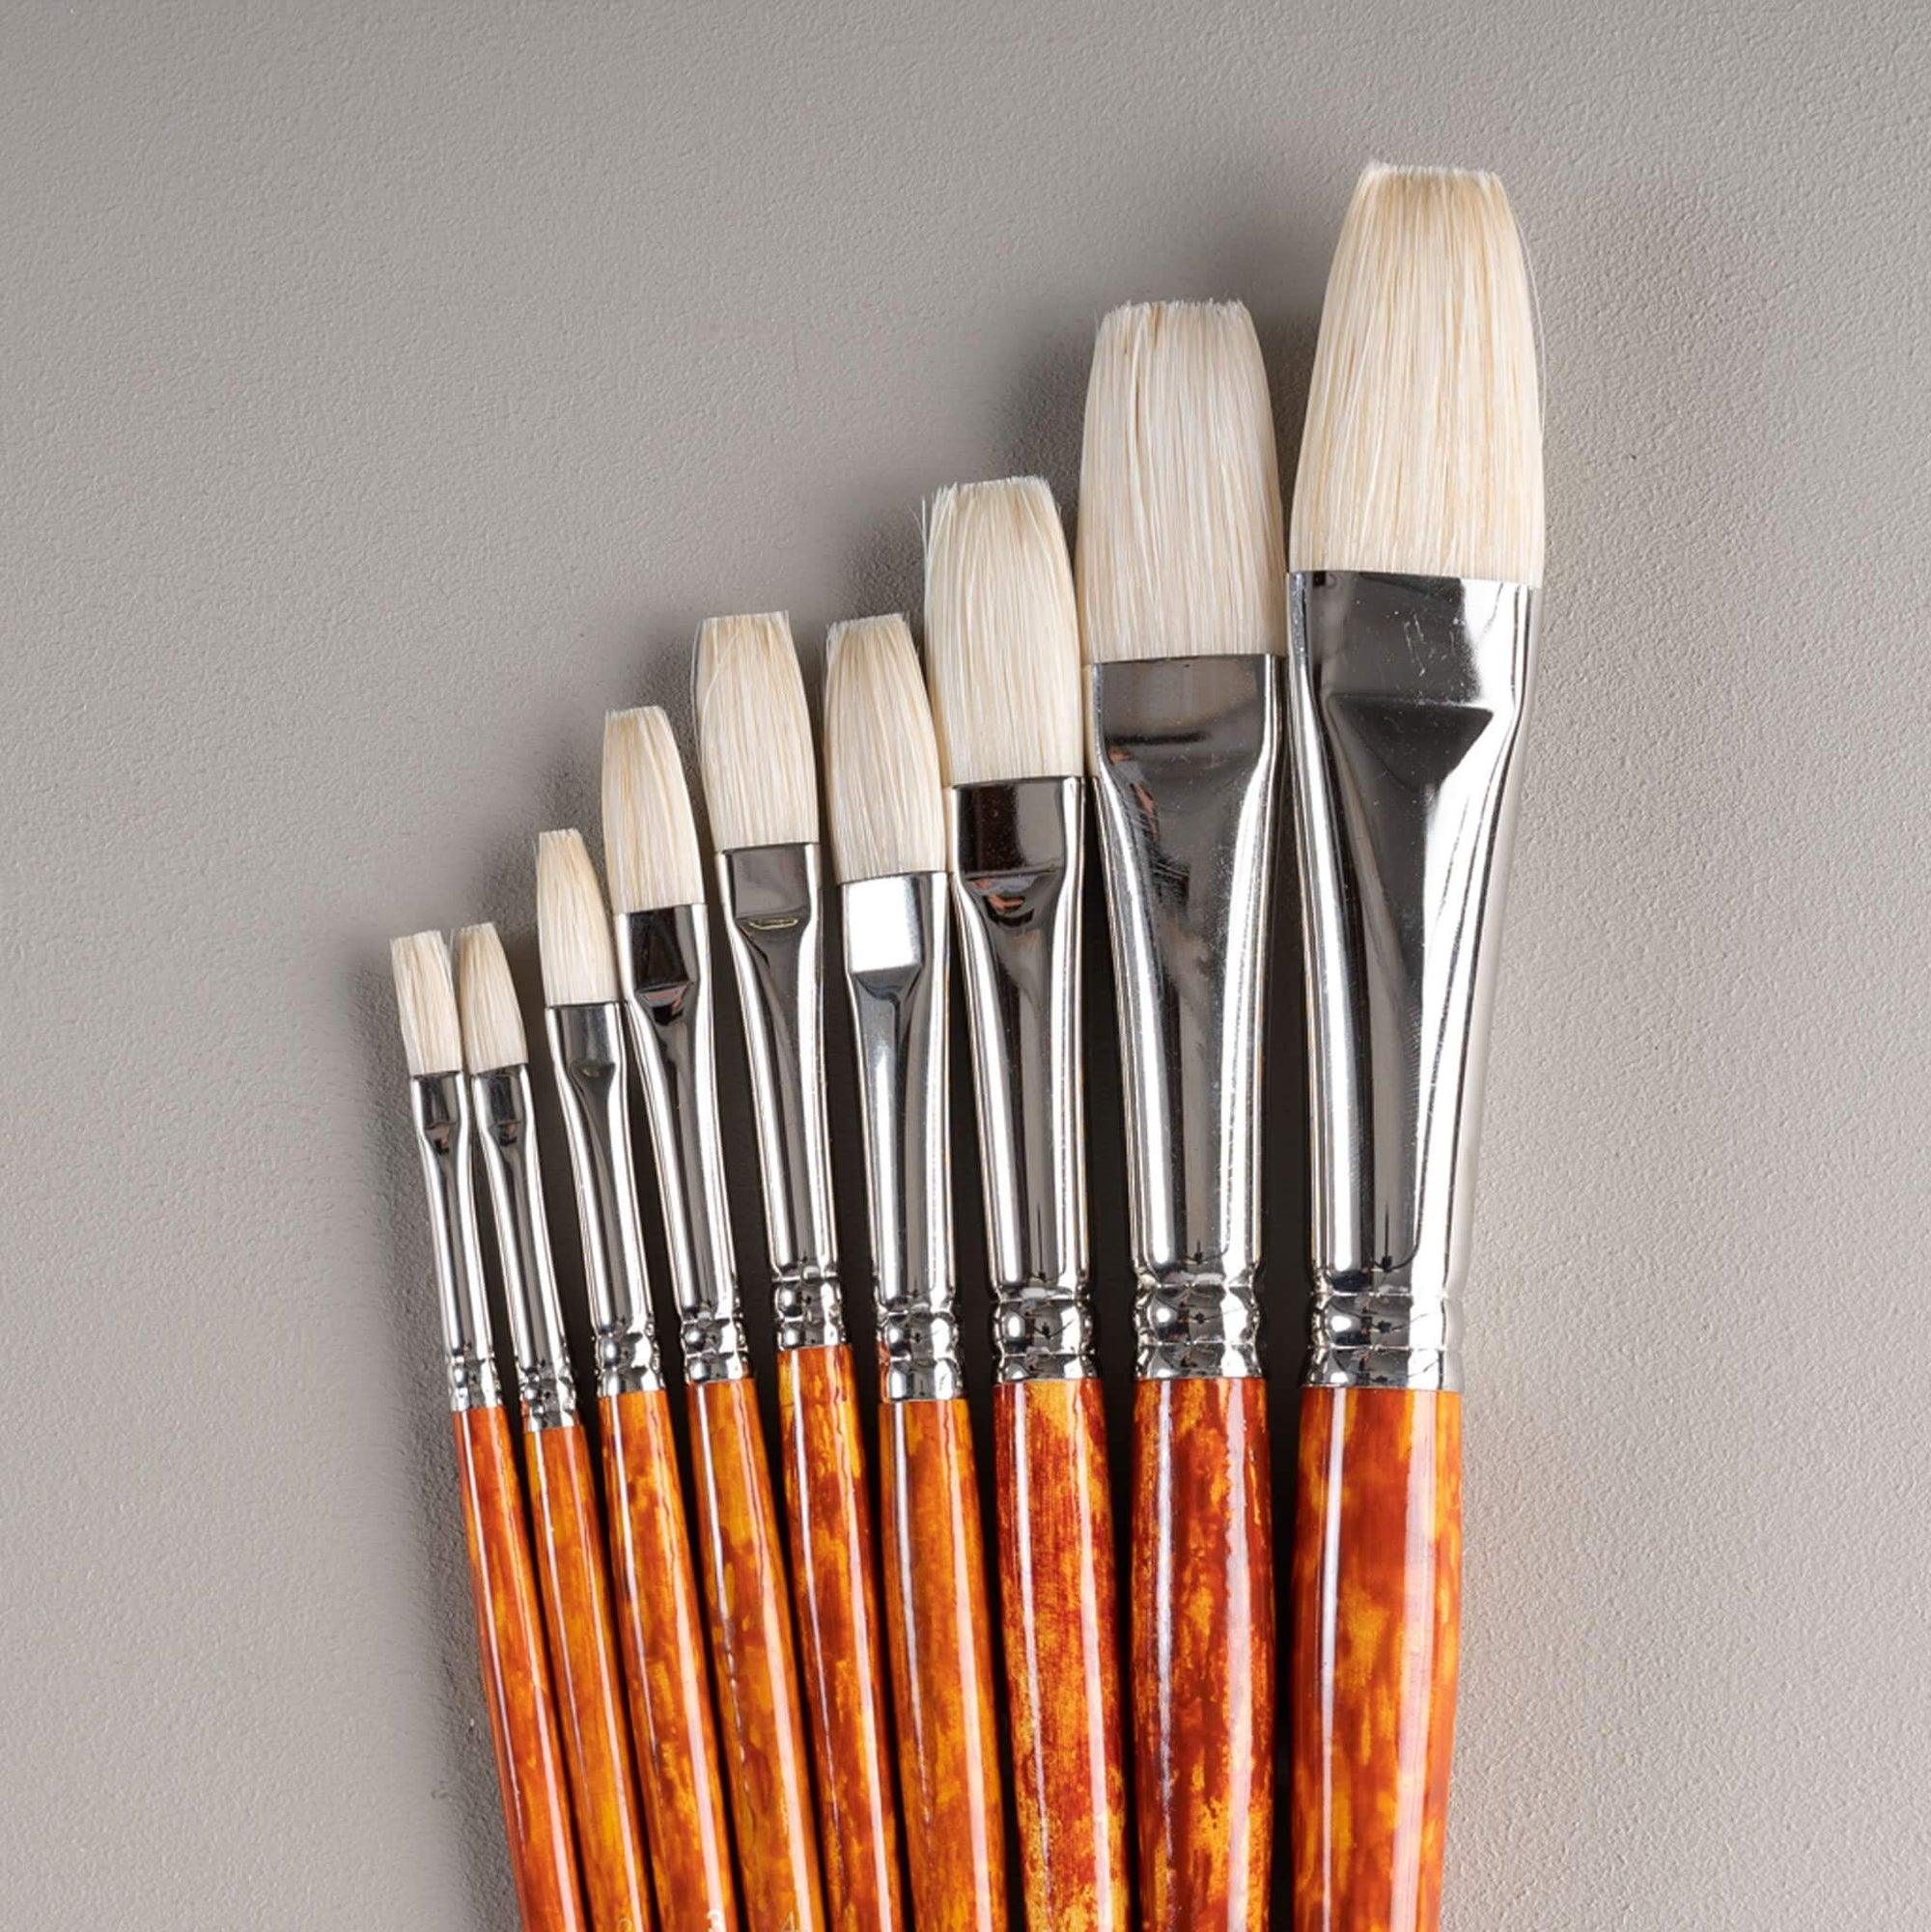 ARTdiscount Bristle Brushes - Long Flat